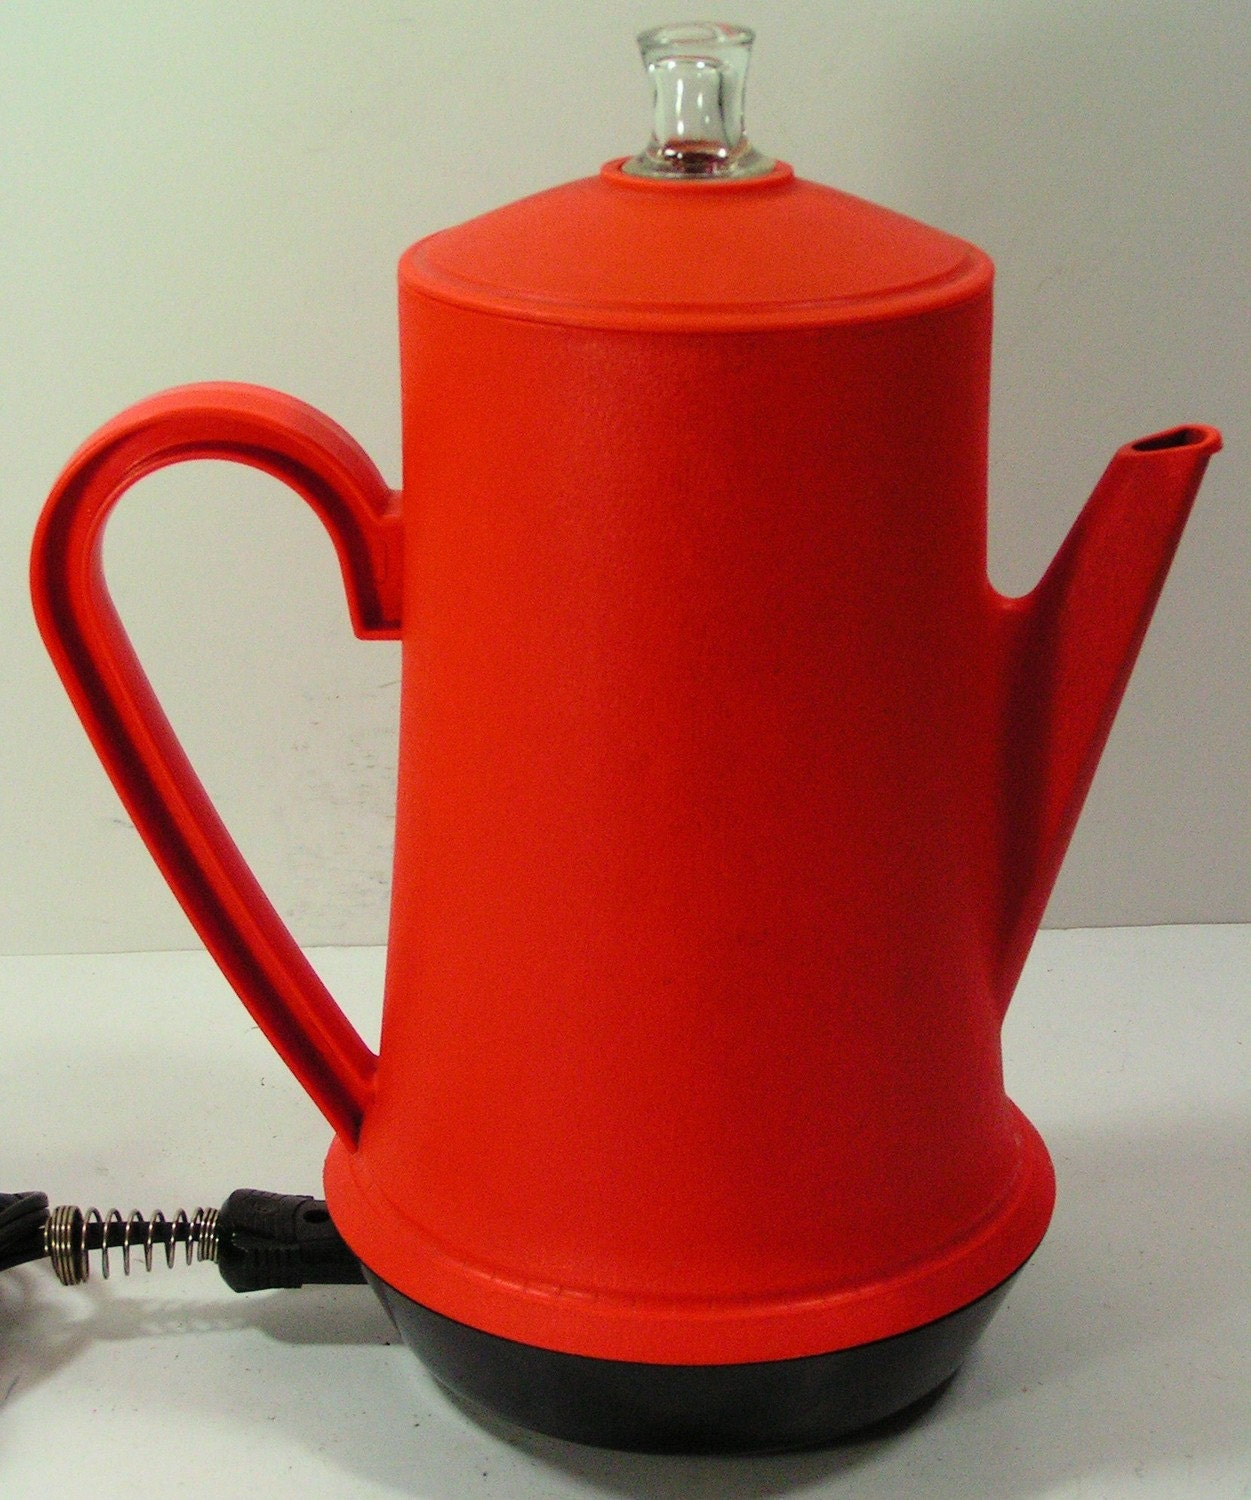 vintage coffee percolator orange 1970s 1960s brewing penncrest 9 cup electric